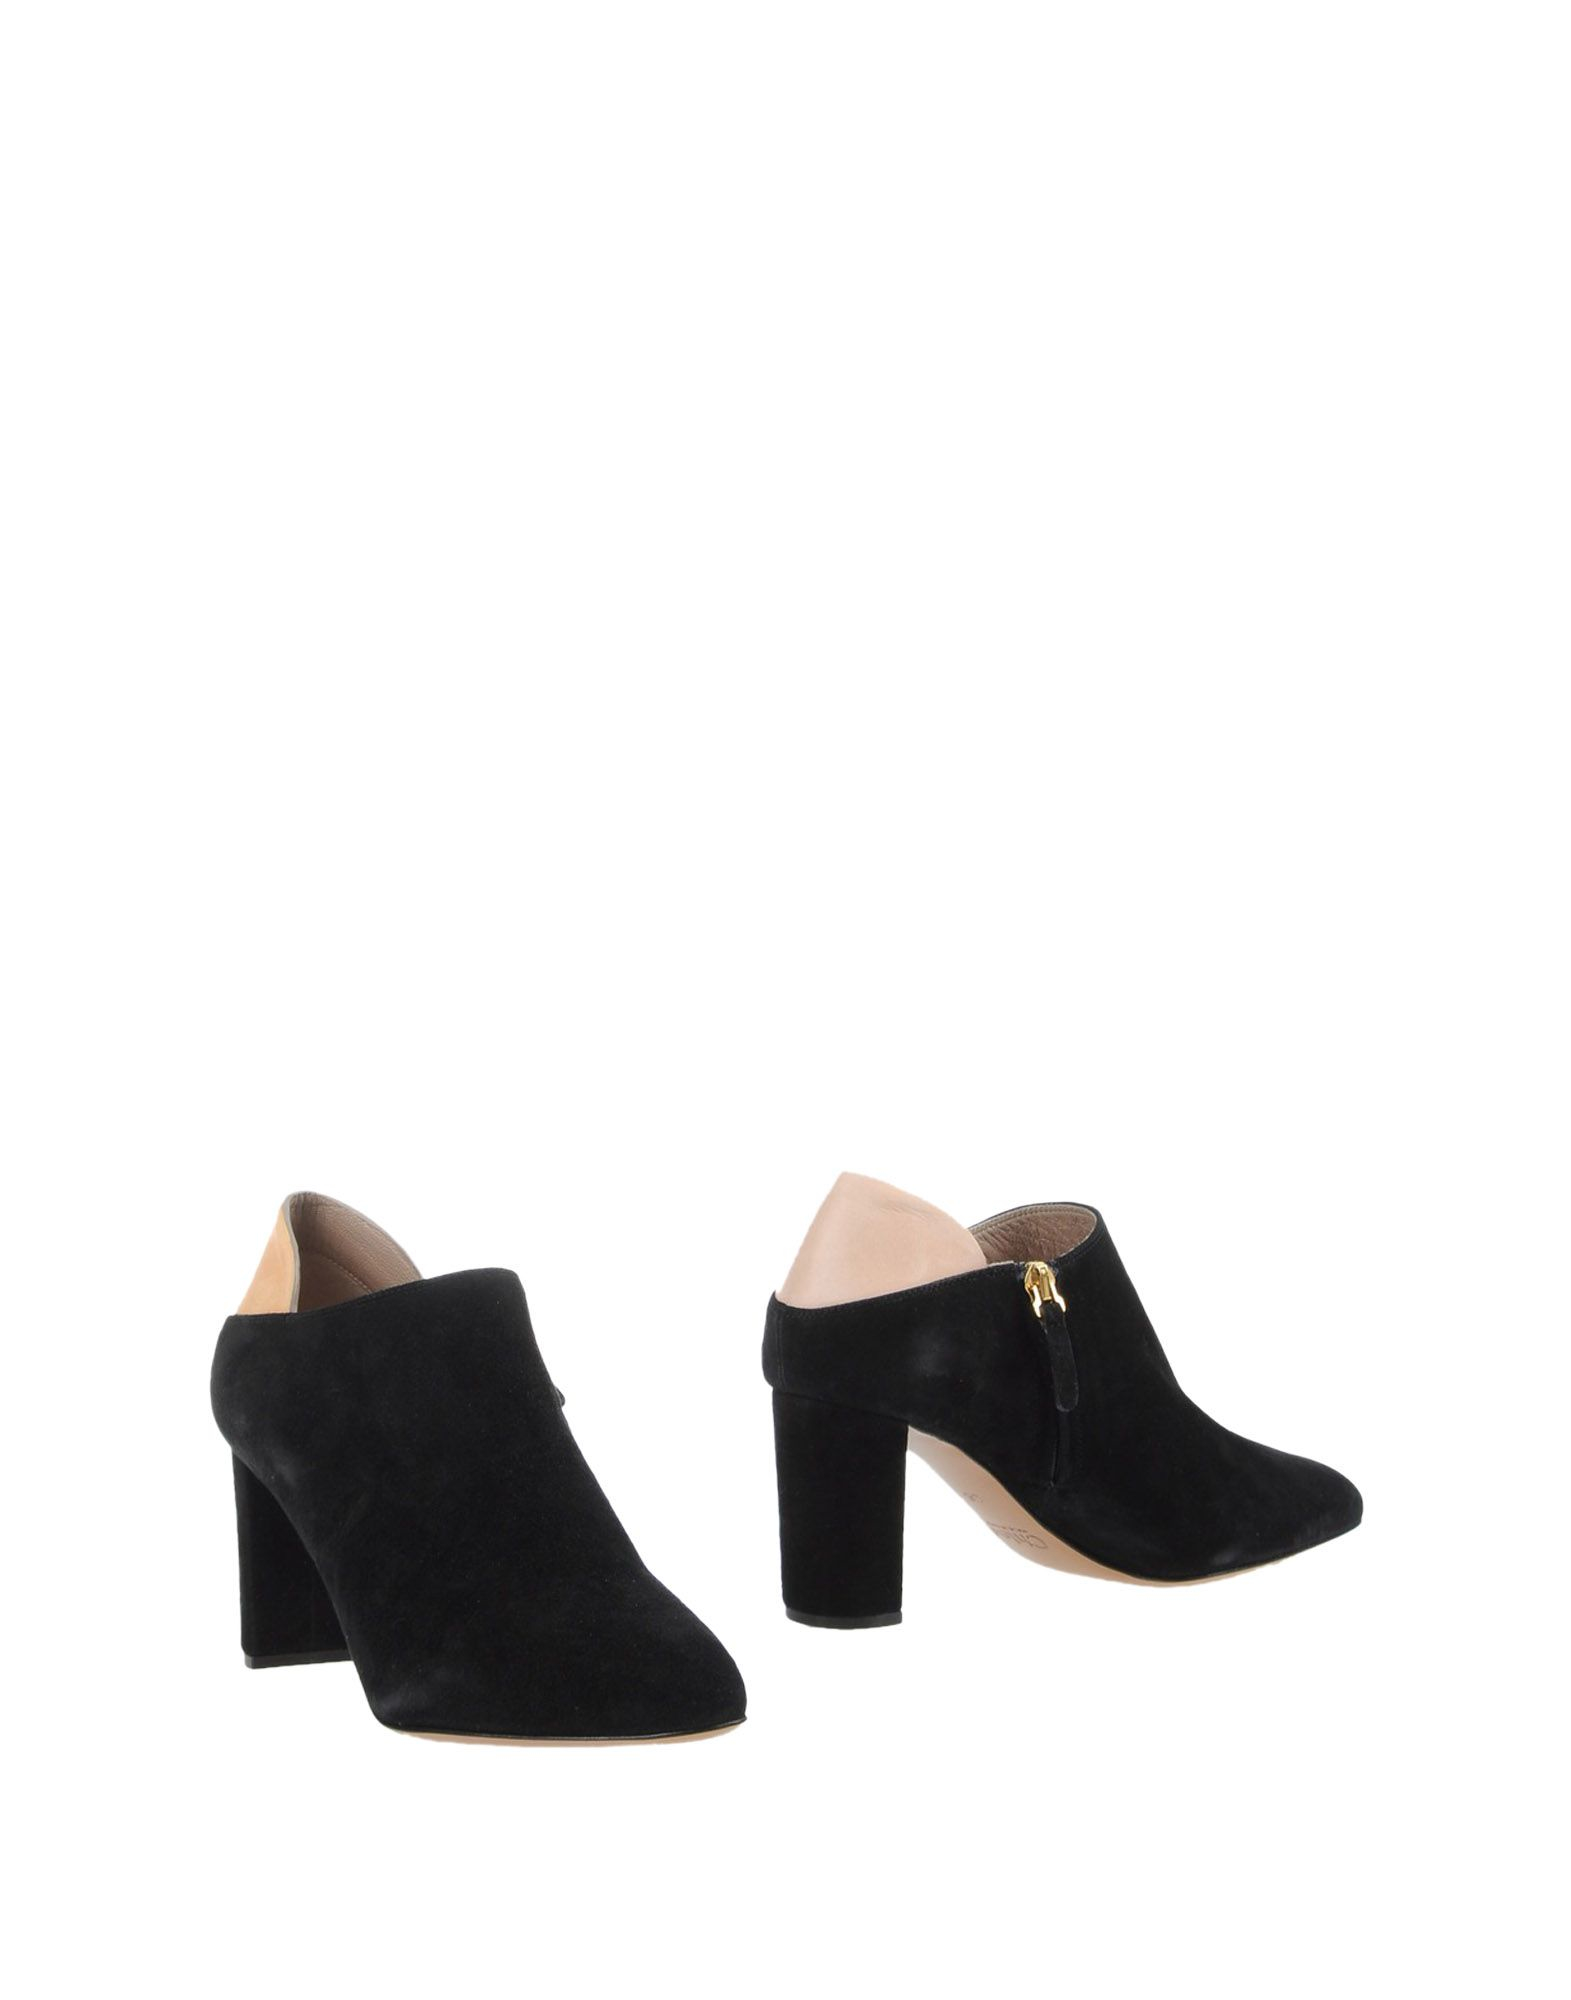 Chloé Shoe Boots in Black | Lyst